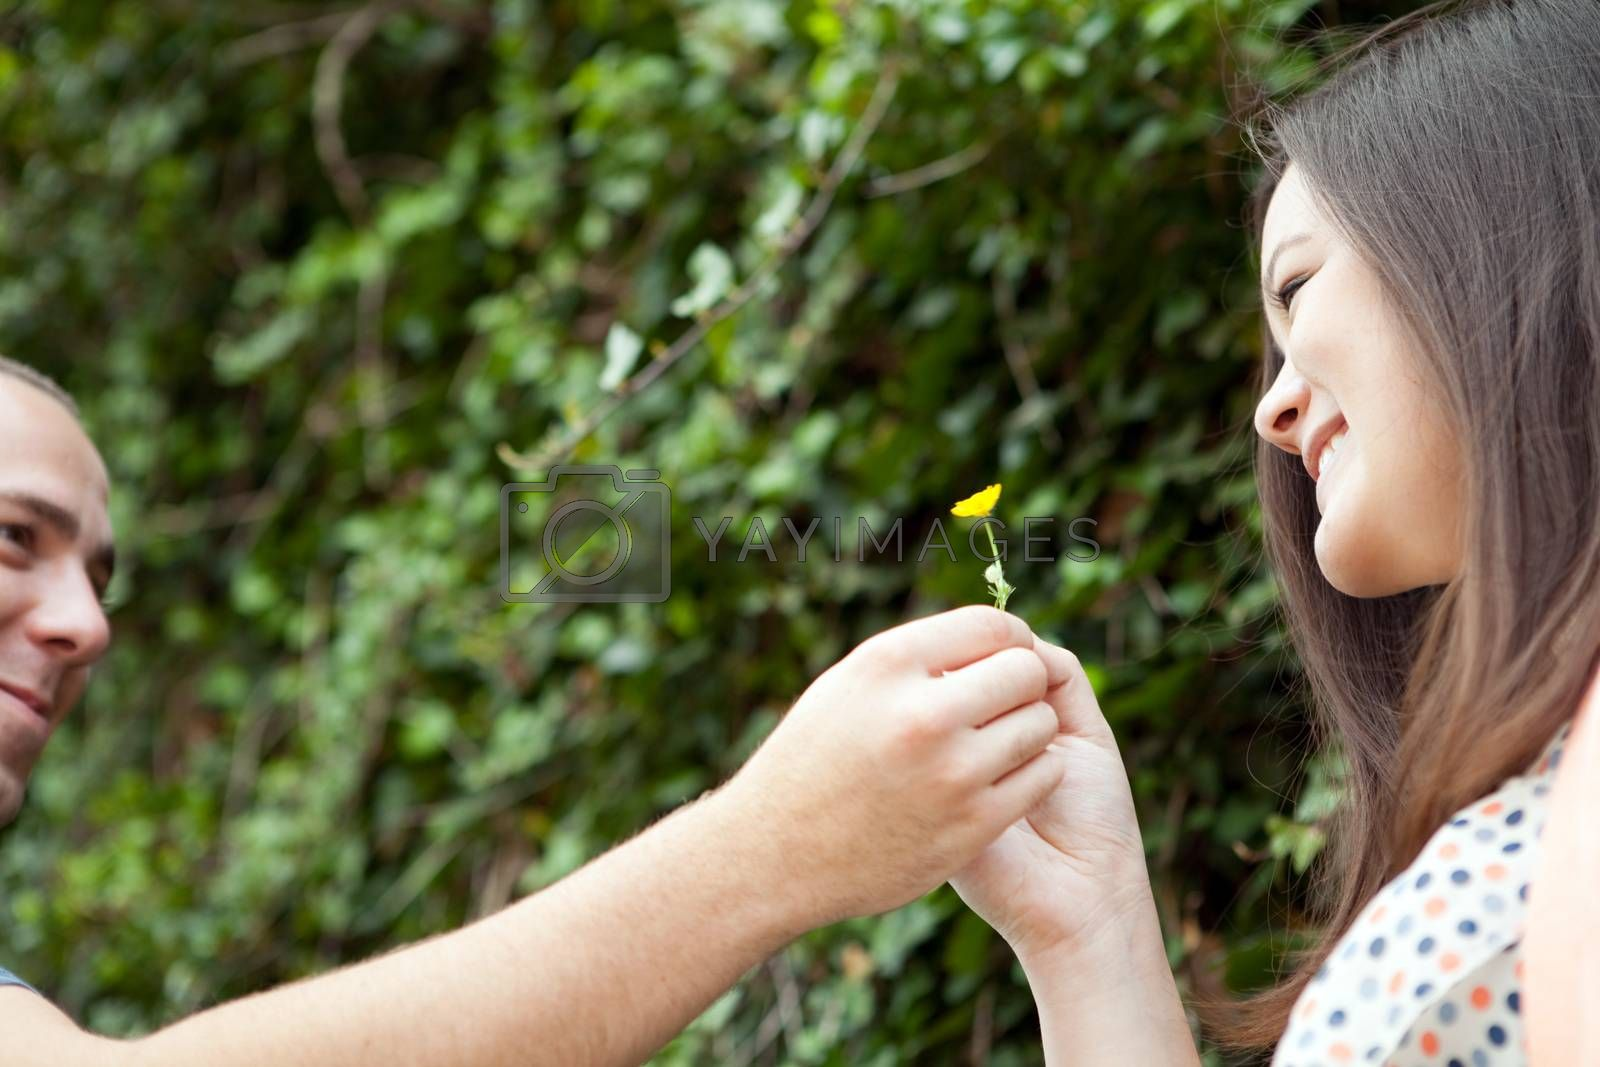 Young happy couple enjoying each others company outdoors.  The man is giving a flower to his love interest.